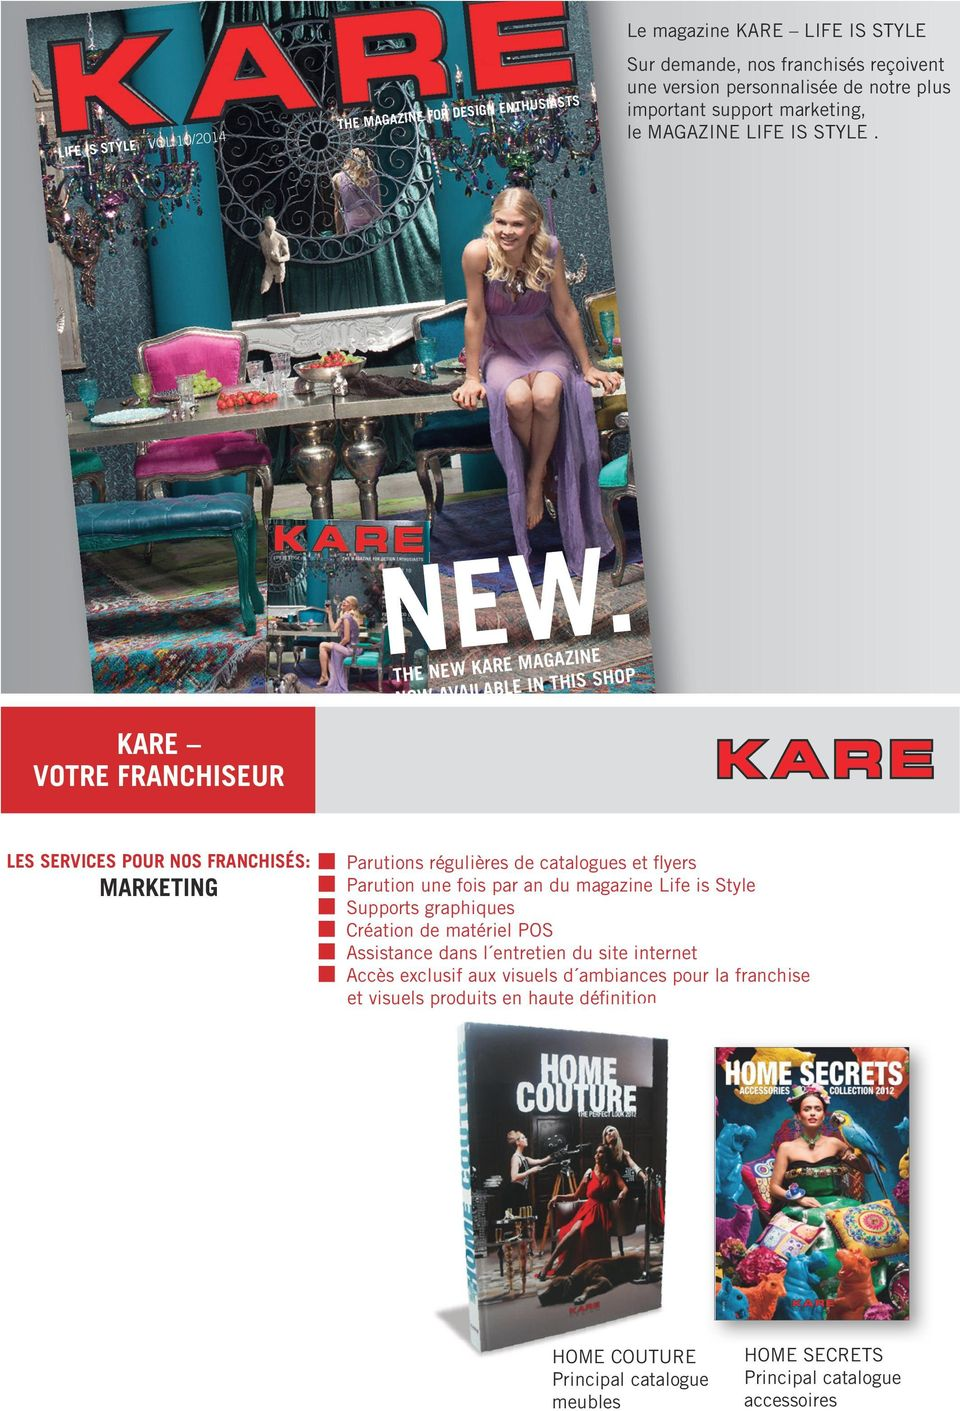 E RE MAGAZIN THE NEW KA SHOP BLE IN THIS NOW AVAILA KARE VOTRE FRANCHISEUR LES SERVICES POUR NOS FRANCHISÉS: MARKETING Parutions régulières de catalogues et flyers Parution une